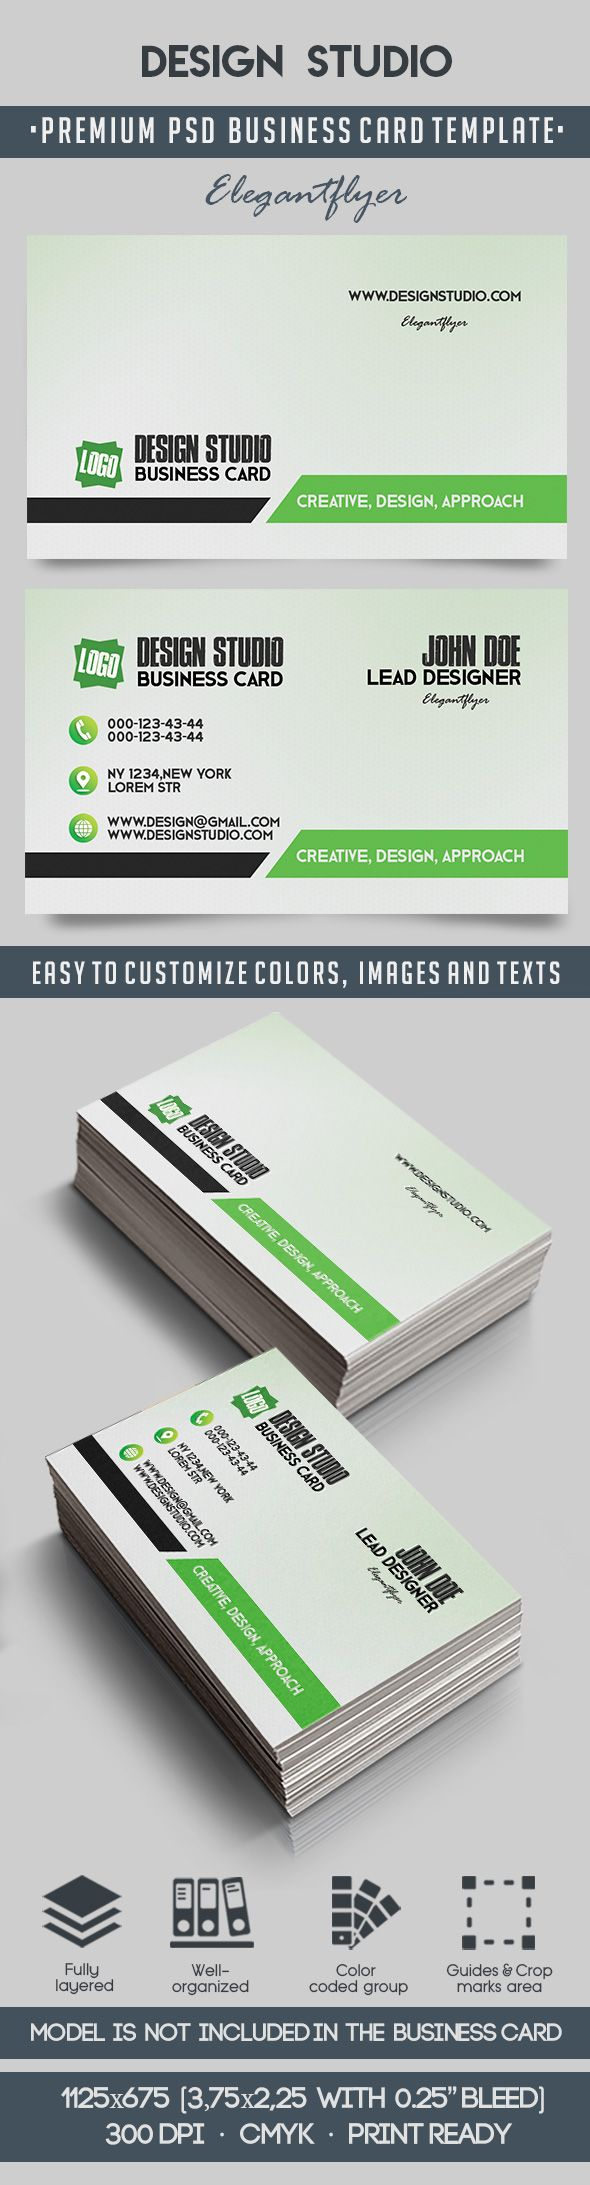 Design Studio – Premium Business Card Templates PSD